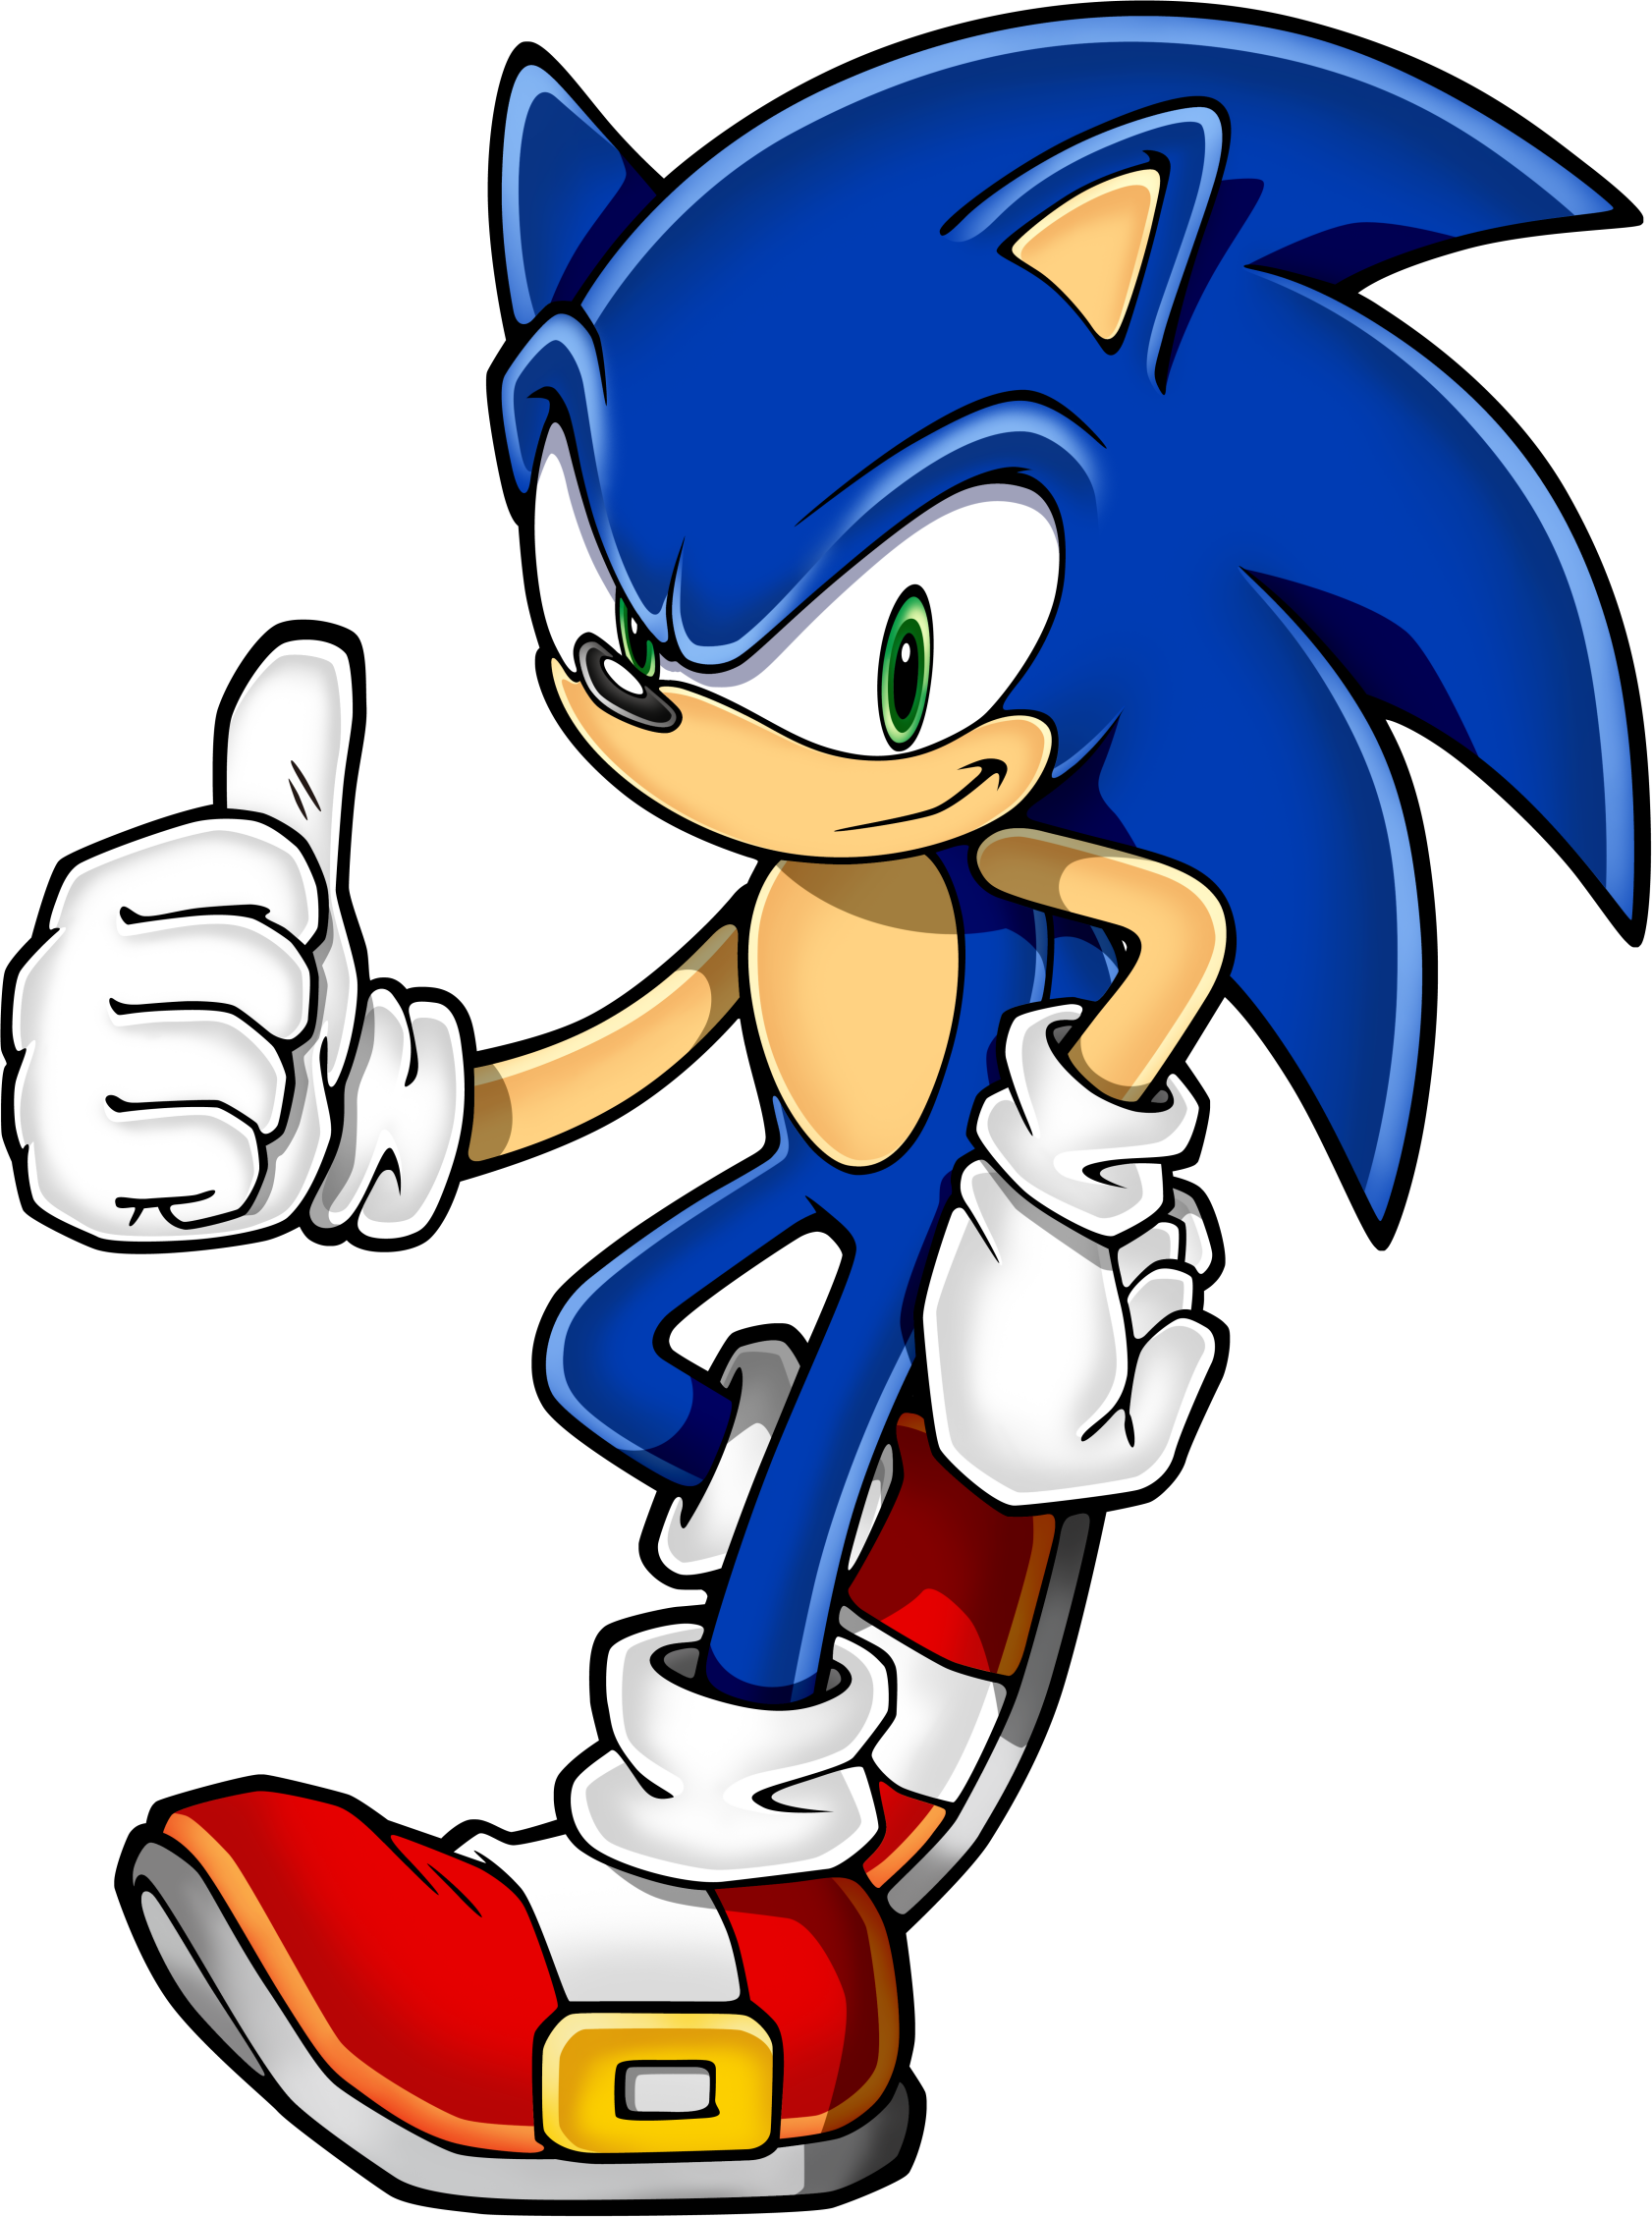 http://static1.wikia.nocookie.net/__cb20101018071756/sonic/images/3/31/Sonic_Art_Assets_DVD_-_Sonic_The_Hedgehog_-_6.png